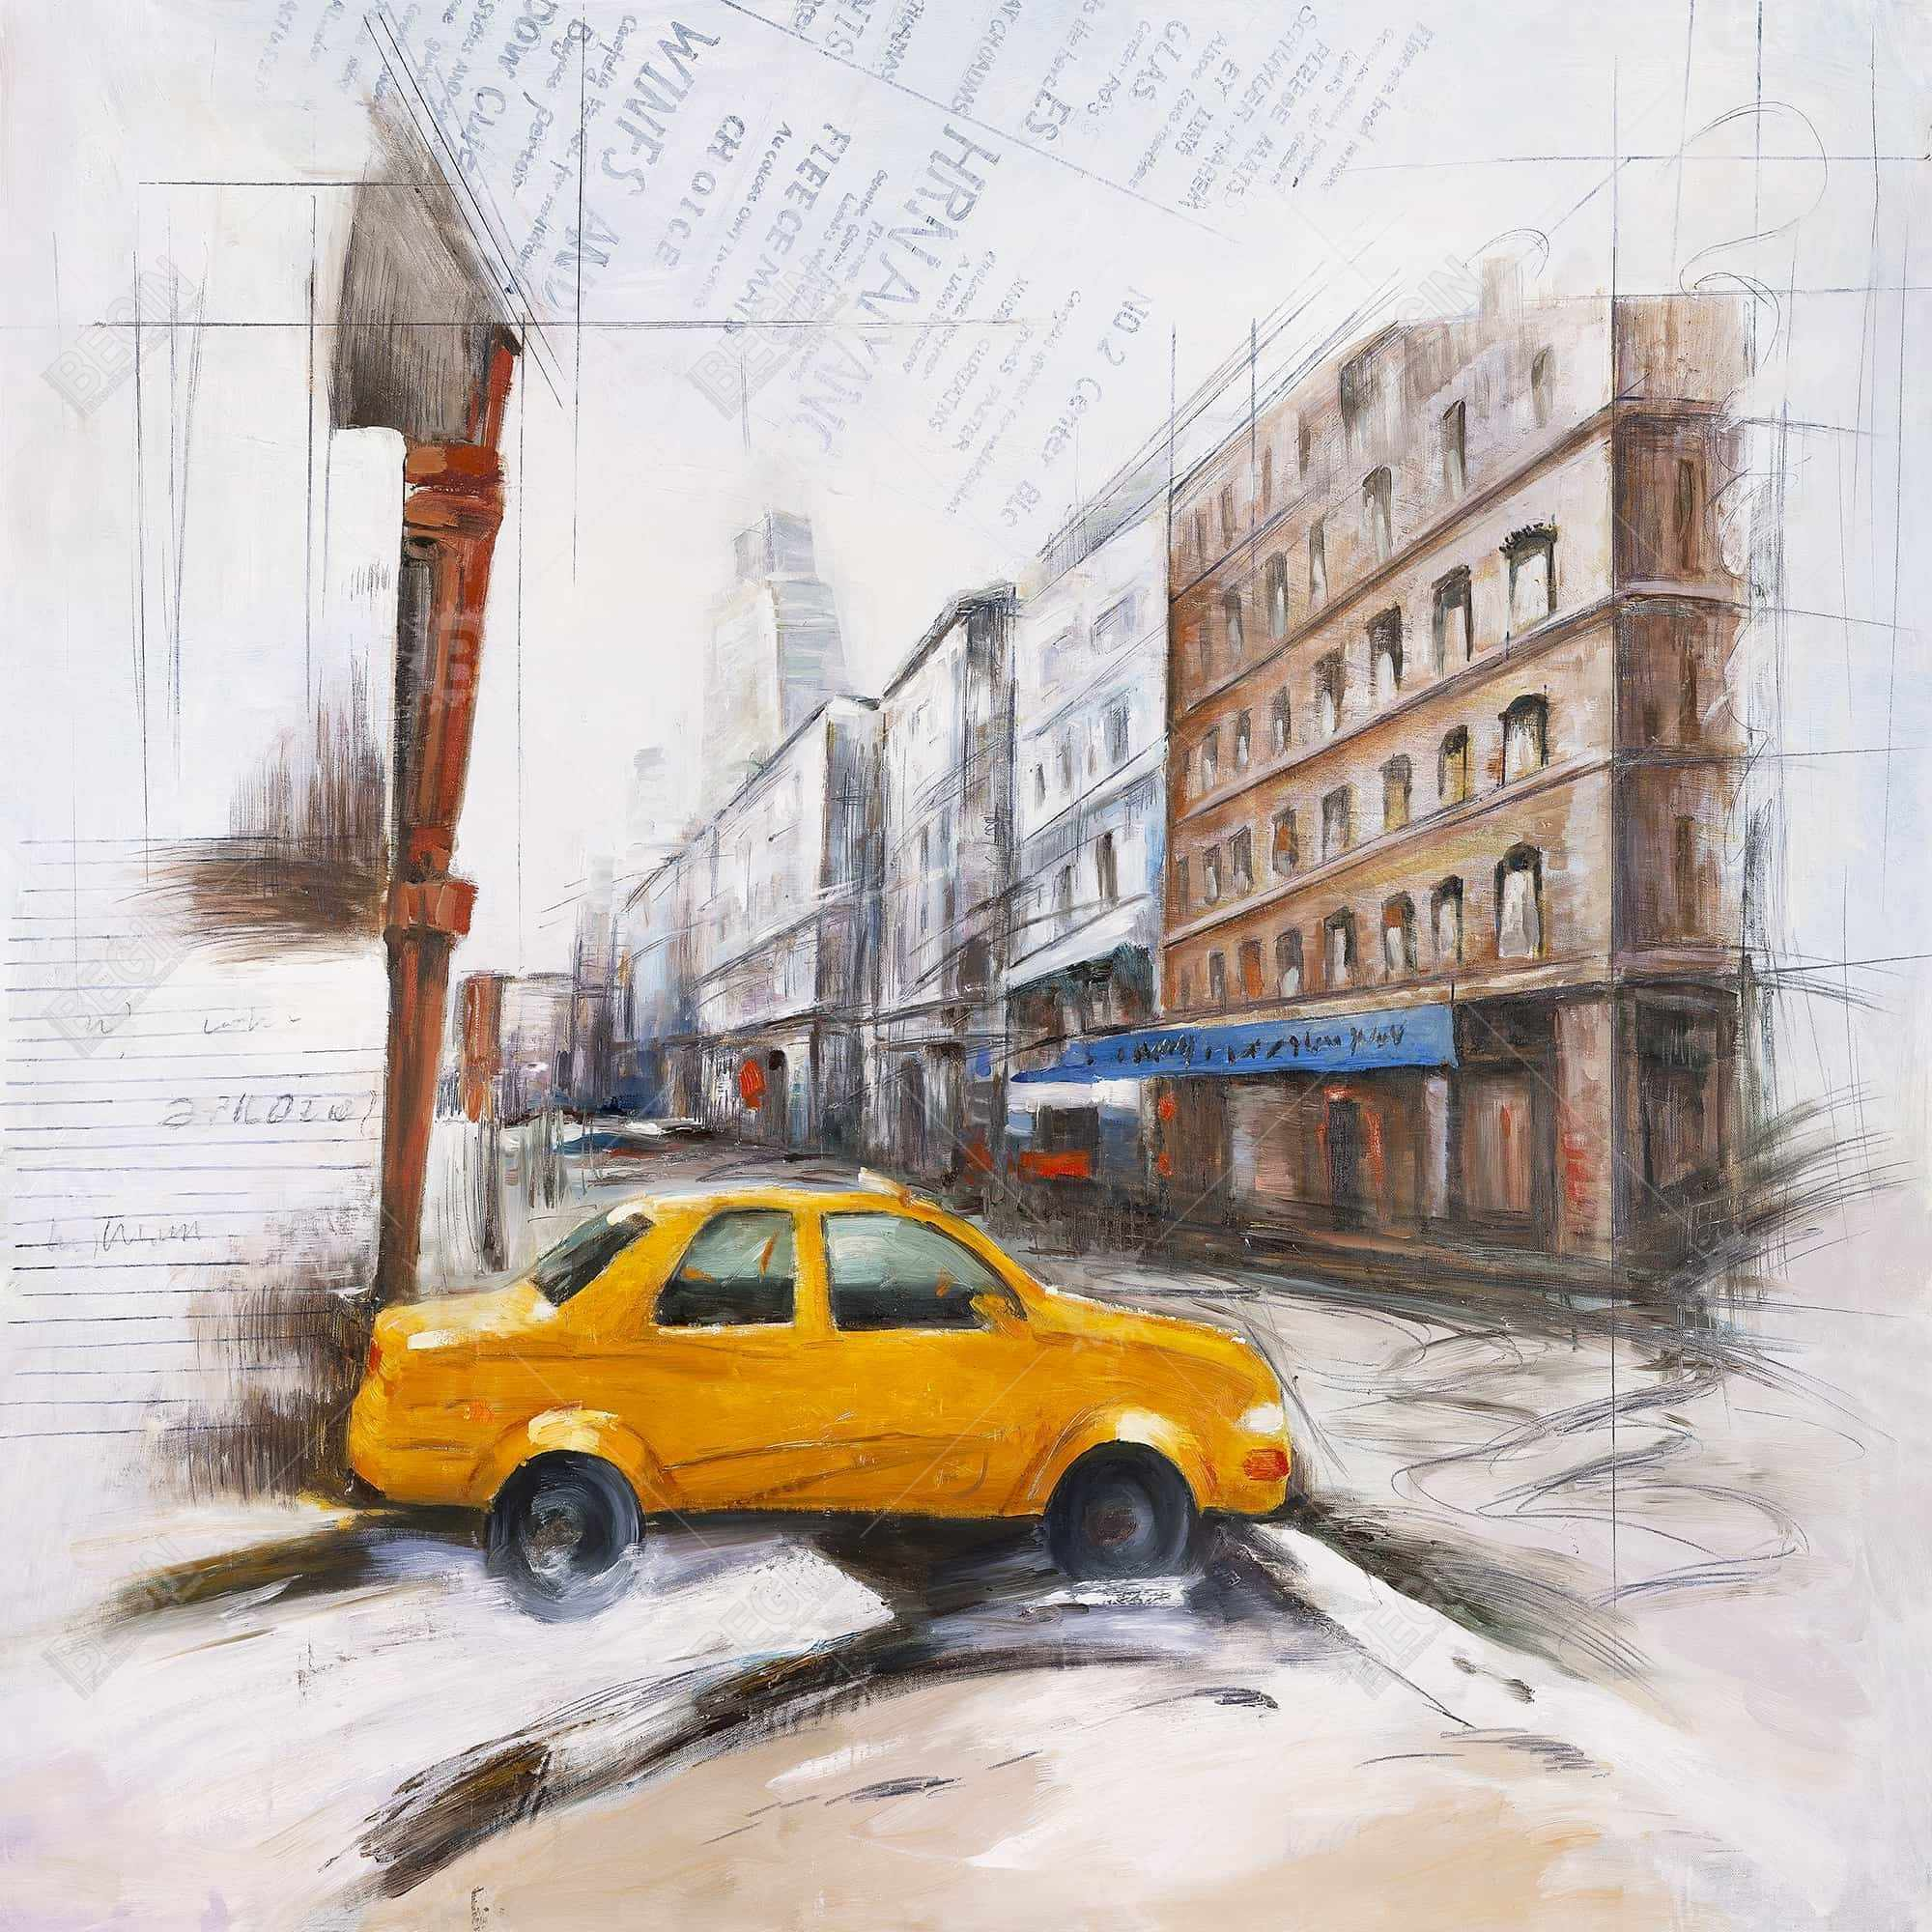 Taxi in the street sketch